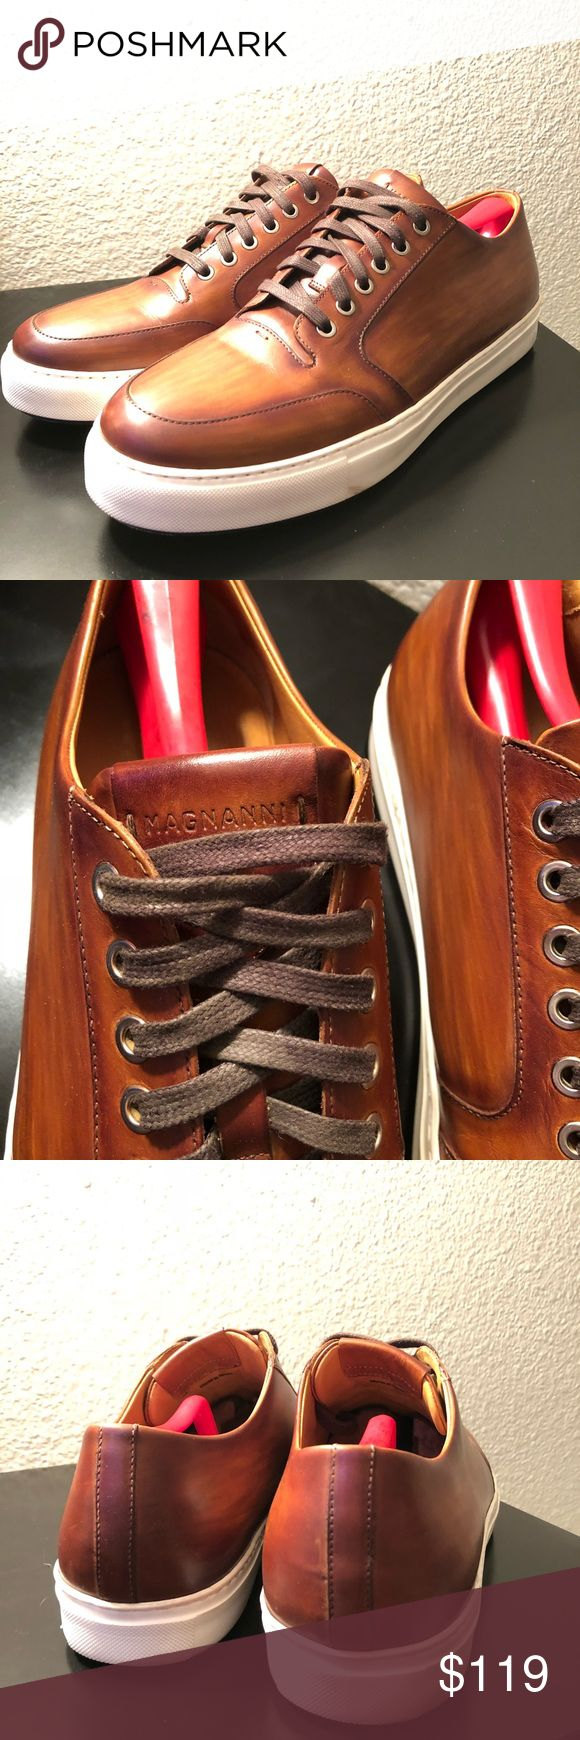 Magnanni Roberto Made in Spain. Size 12 US men. Excellent condition. Magnanni Sh...